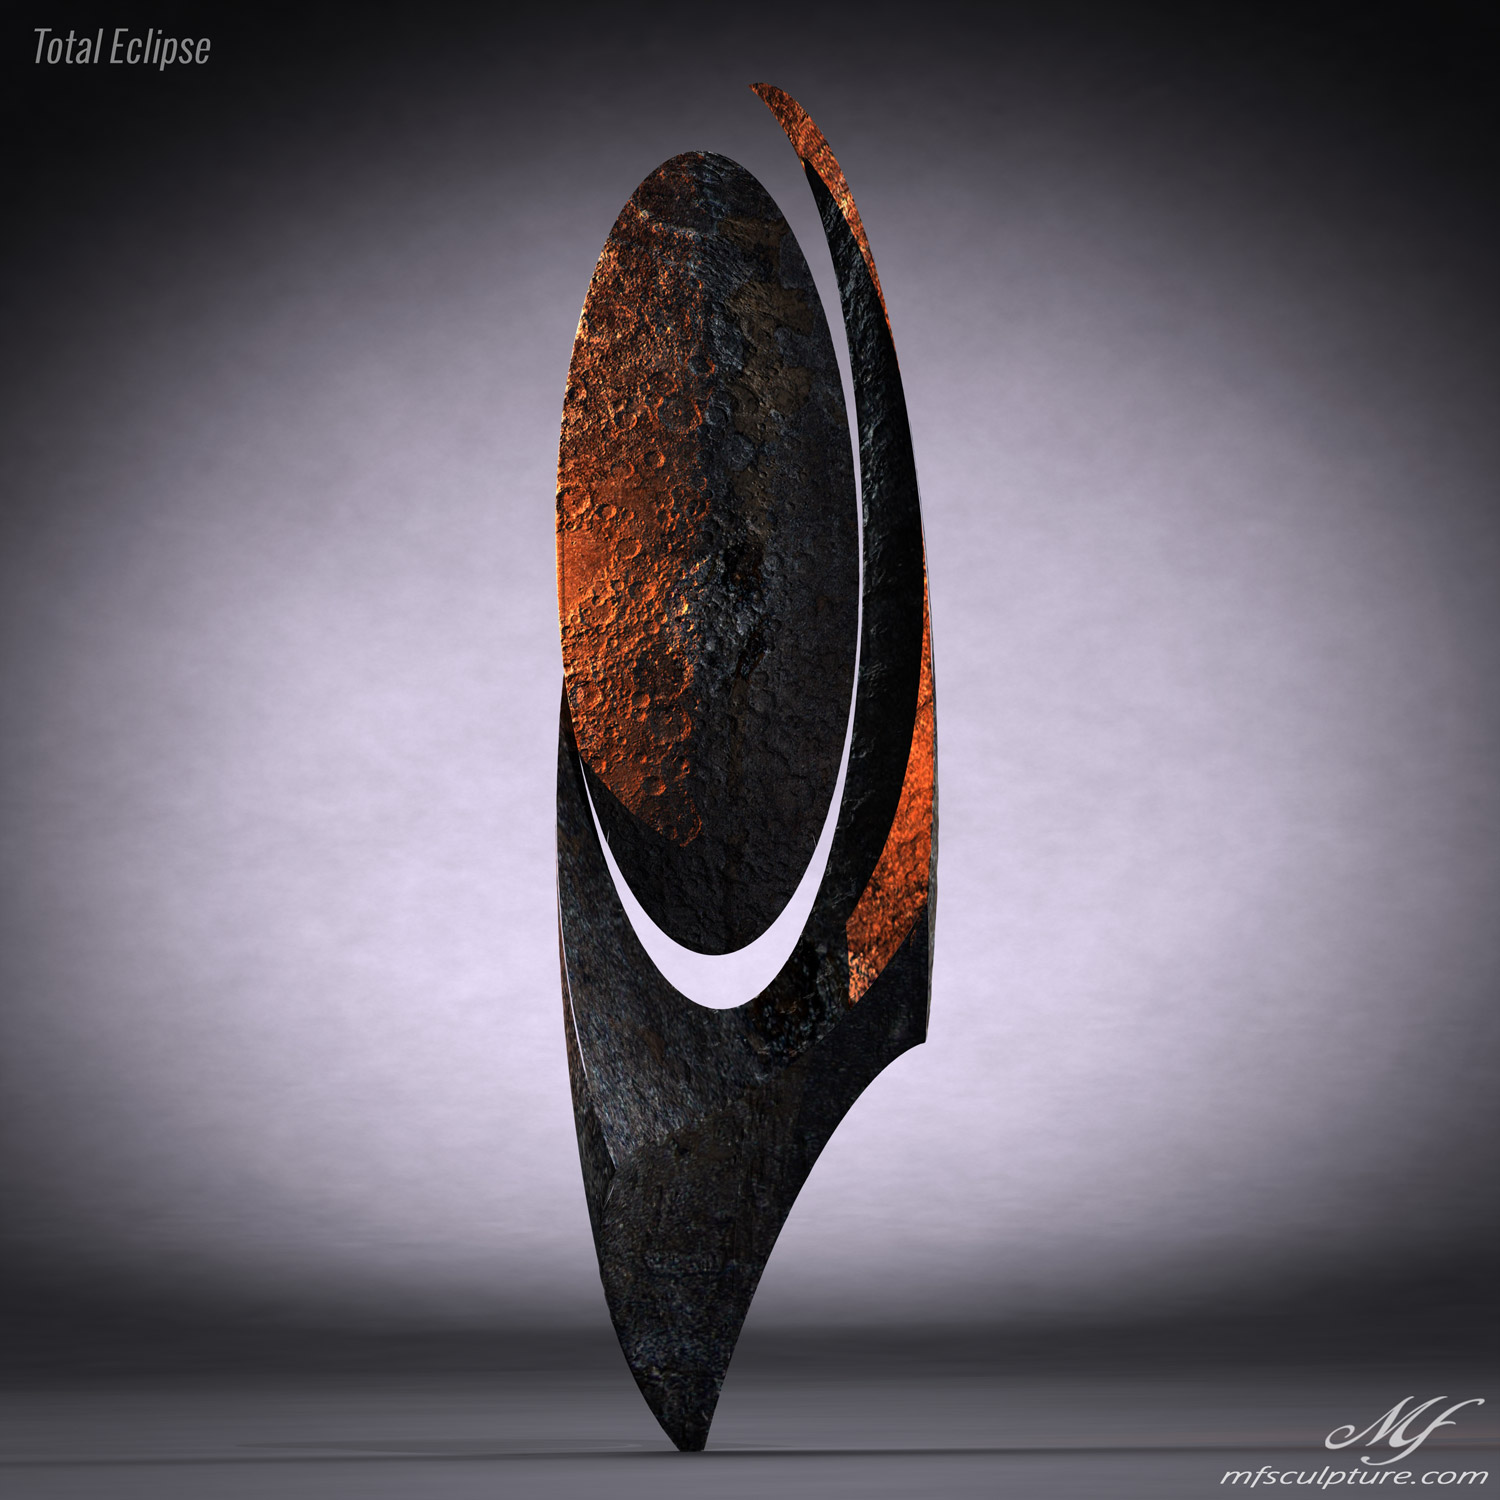 Total Eclipse Contemporary Sculpture Science Mike Fields 2 1